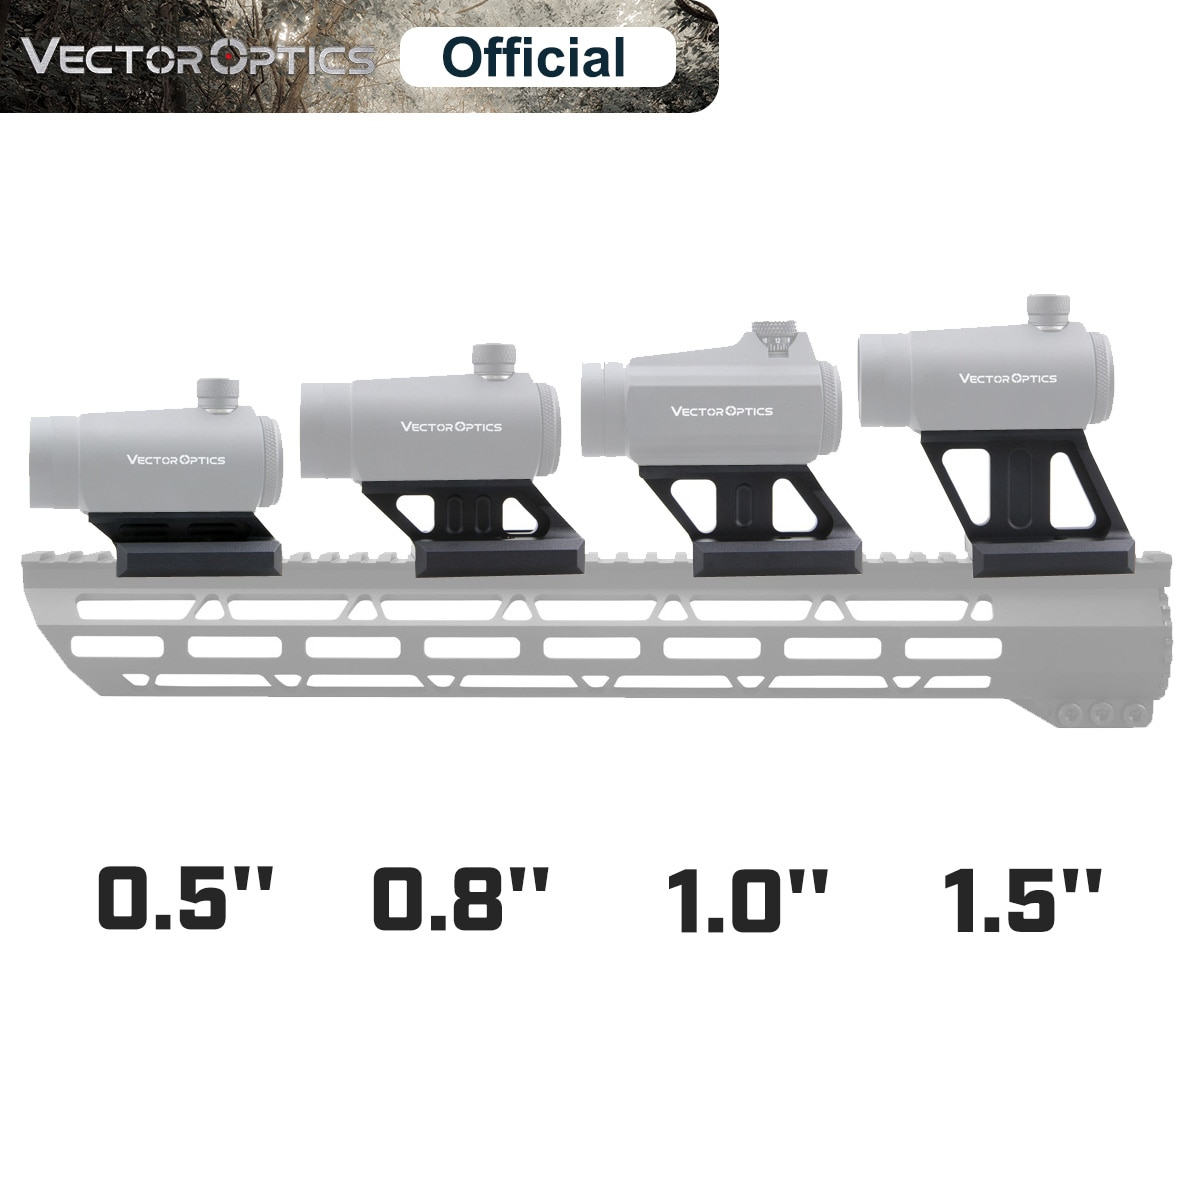 arisaka offset optic mount for red dot sights aimpoint micro t1 t2 h1 h2 trijicon rmr sro sig romeo 5 holosun hs403 hs503 hs515 Vector Optics Red Dot Riser Rail Mount 0.5 0.83 1.0 1.5 Cantilever Picatinny Weaver 21m Fit Maverick & Aimpoint Micro T1 T2